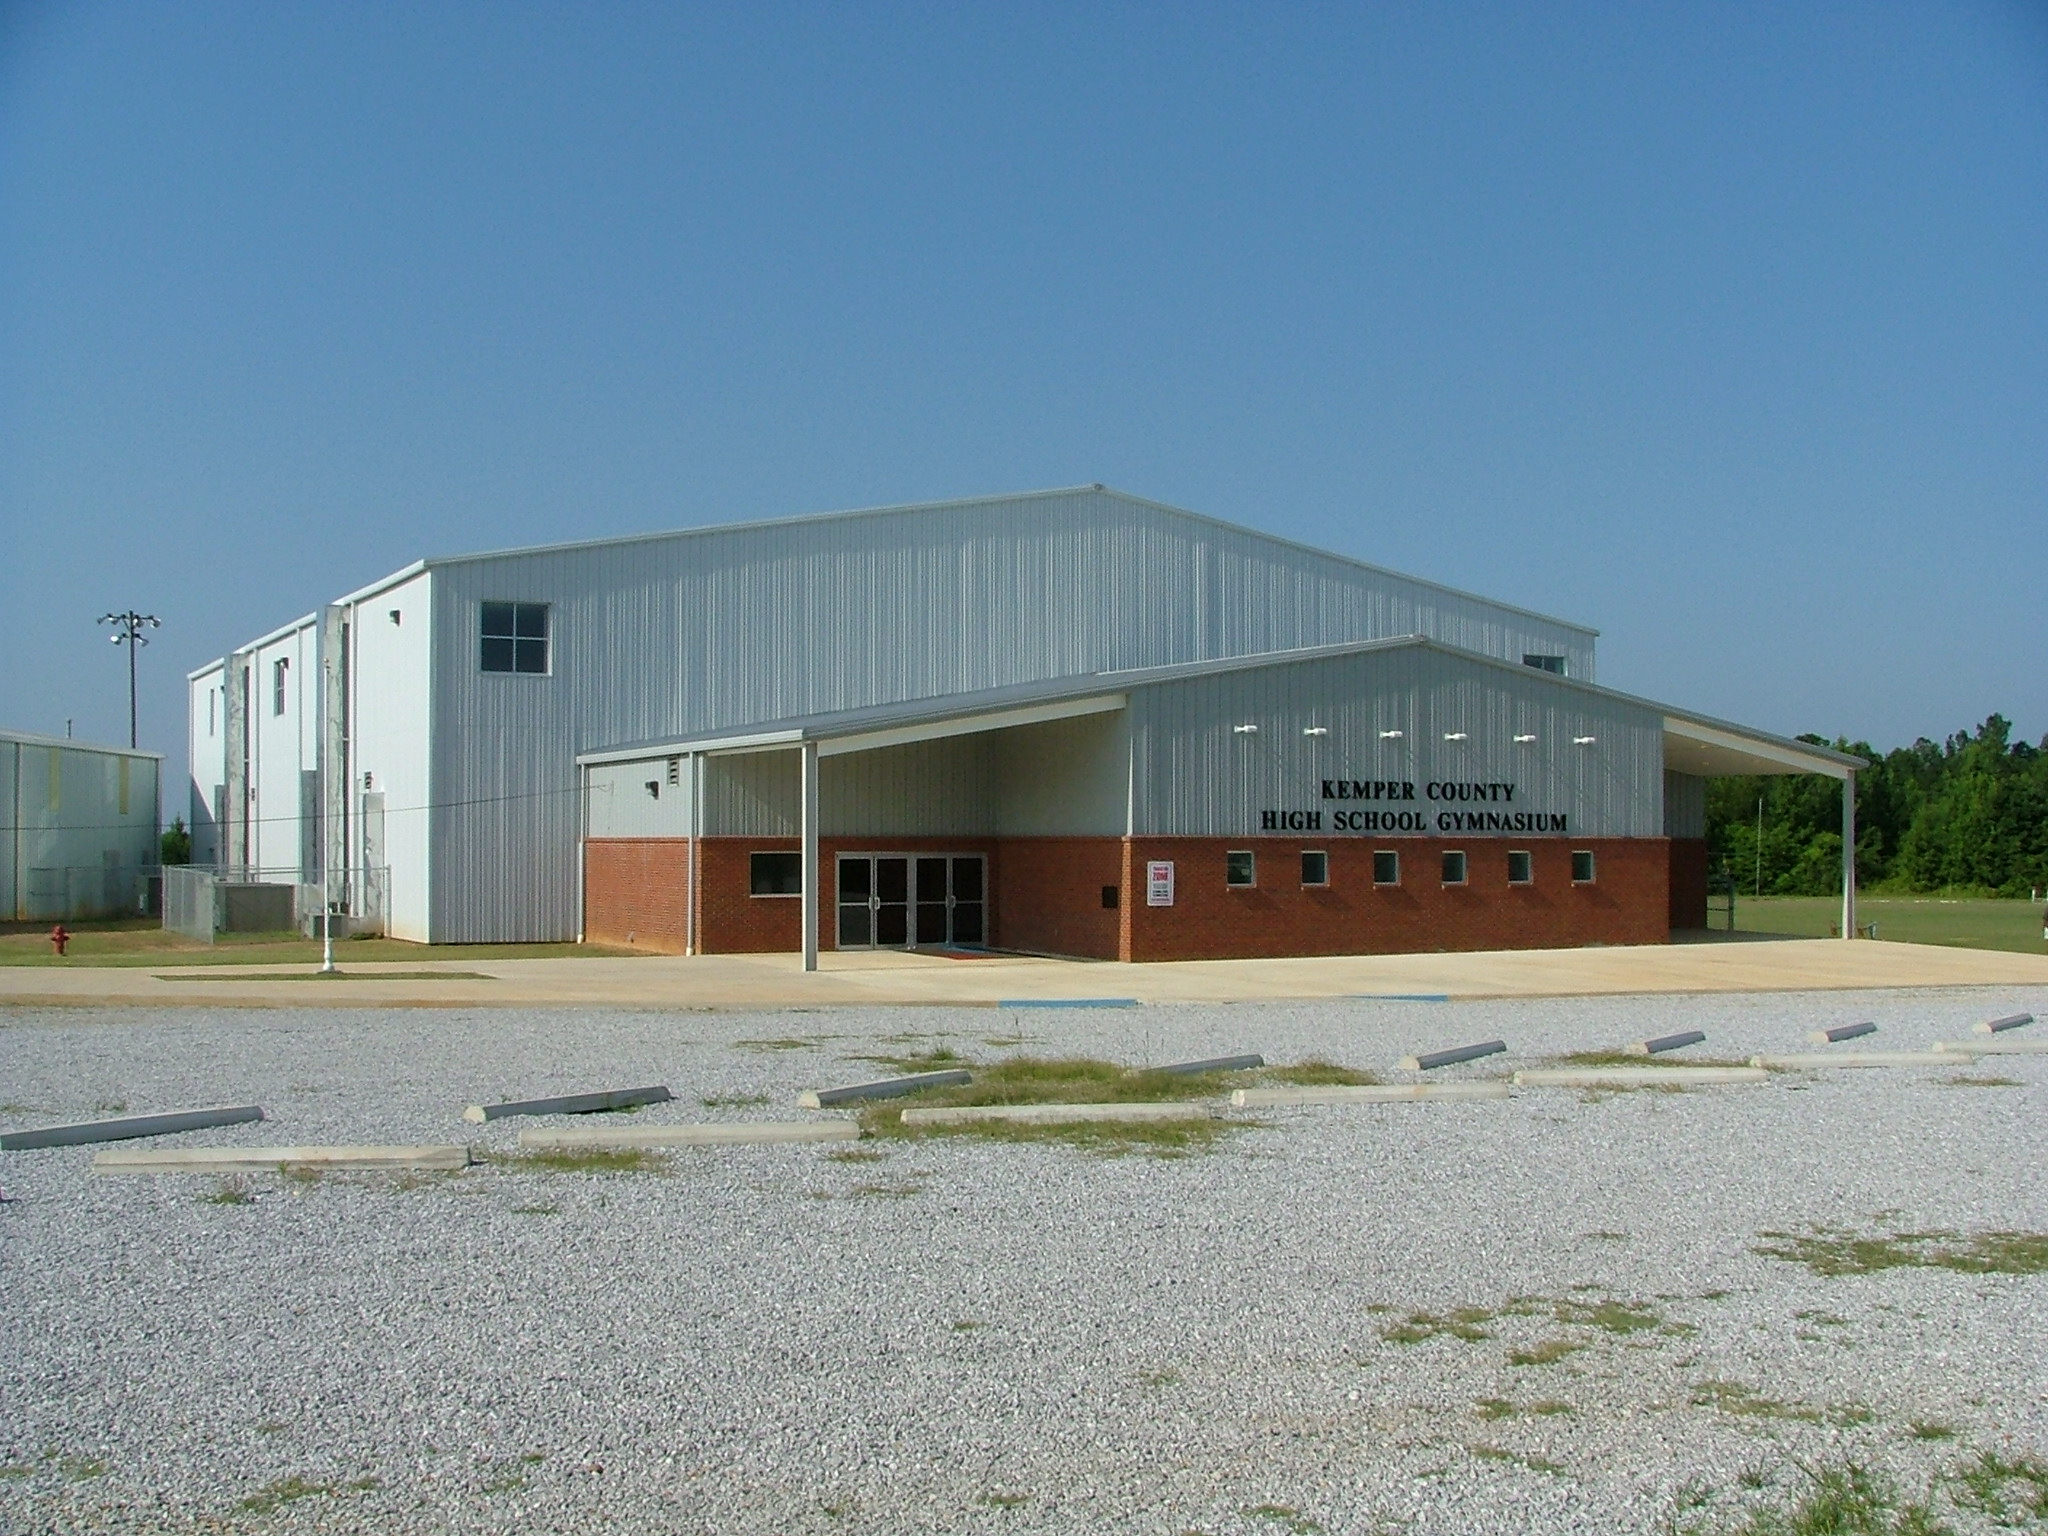 KEMPER COUNTY HIGH SCHOOL GYMNASIUM